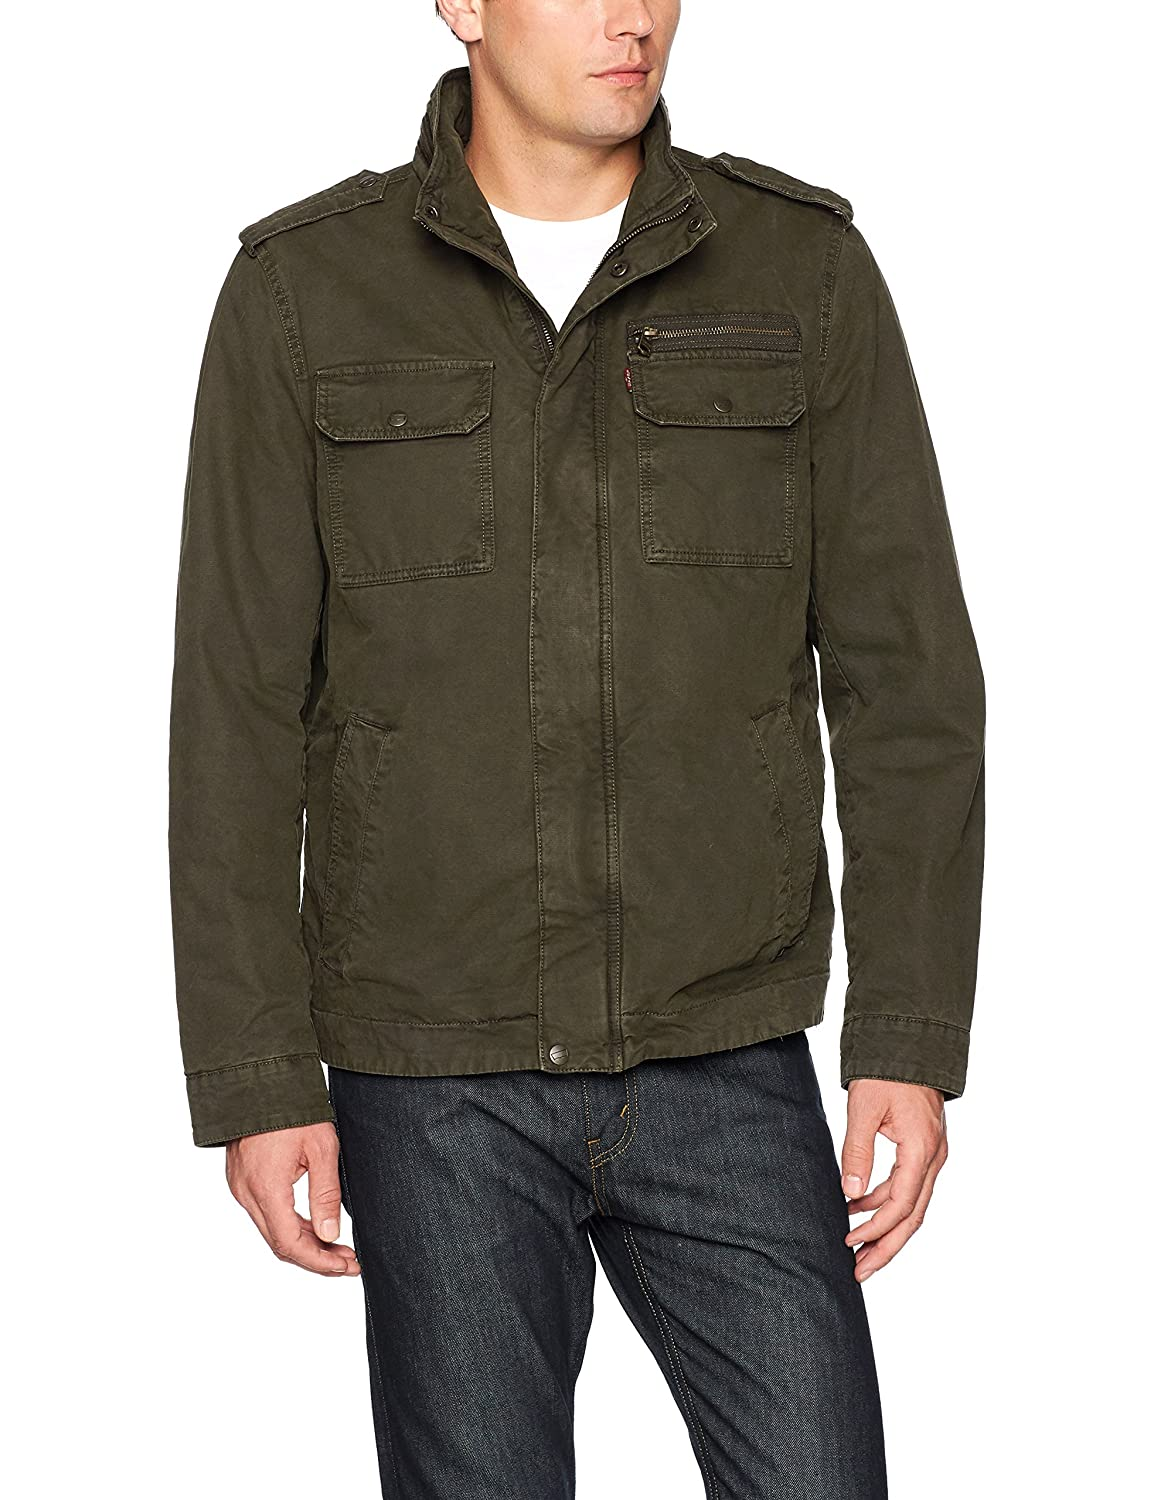 Levi's Men's Washed Cotton Two Pocket Sherpa Lined Military Jacket LM7RC394